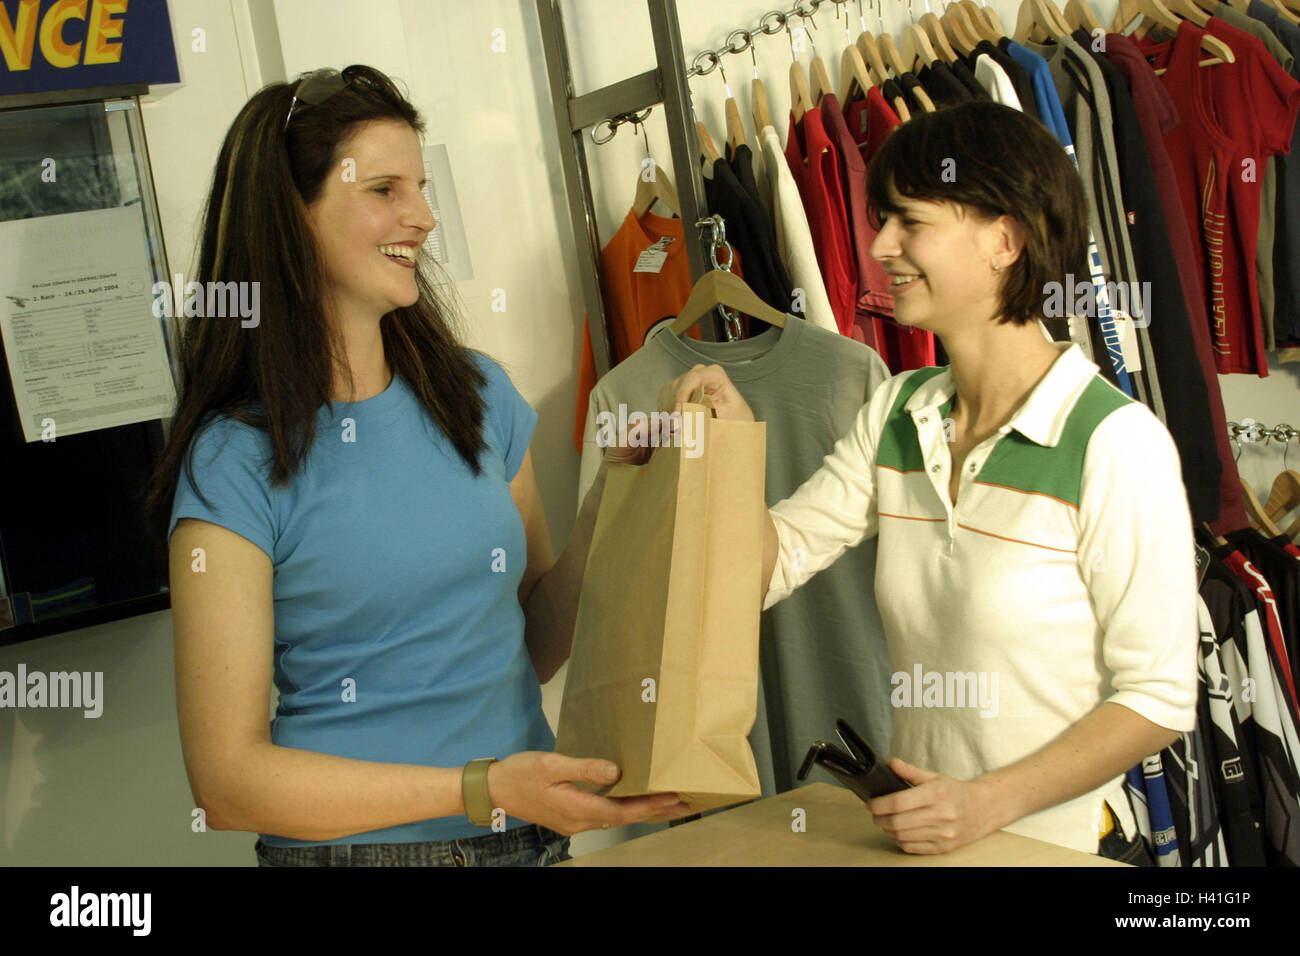 w shopping tour shop assistant product paper bag pass stock photo w shopping tour shop assistant product paper bag pass leisure time young 20 30 years boutique clothing business fashion house